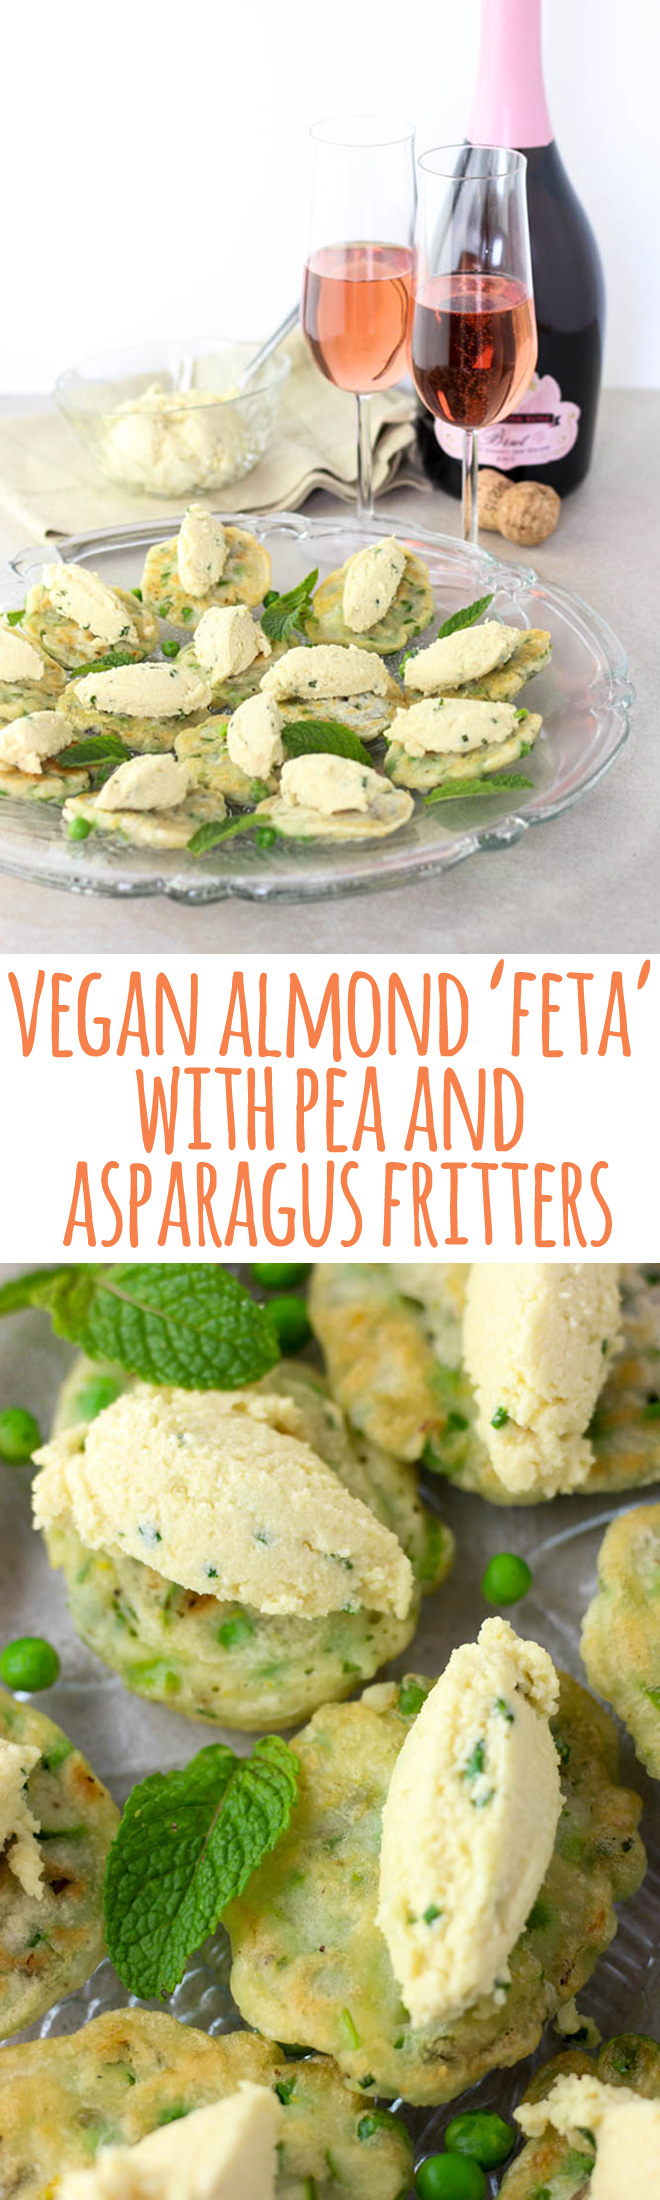 These fresh and elegant mouthfuls topped with a vegan almond 'feta' are a unique hors d'oeuvres, or even a light lunch.